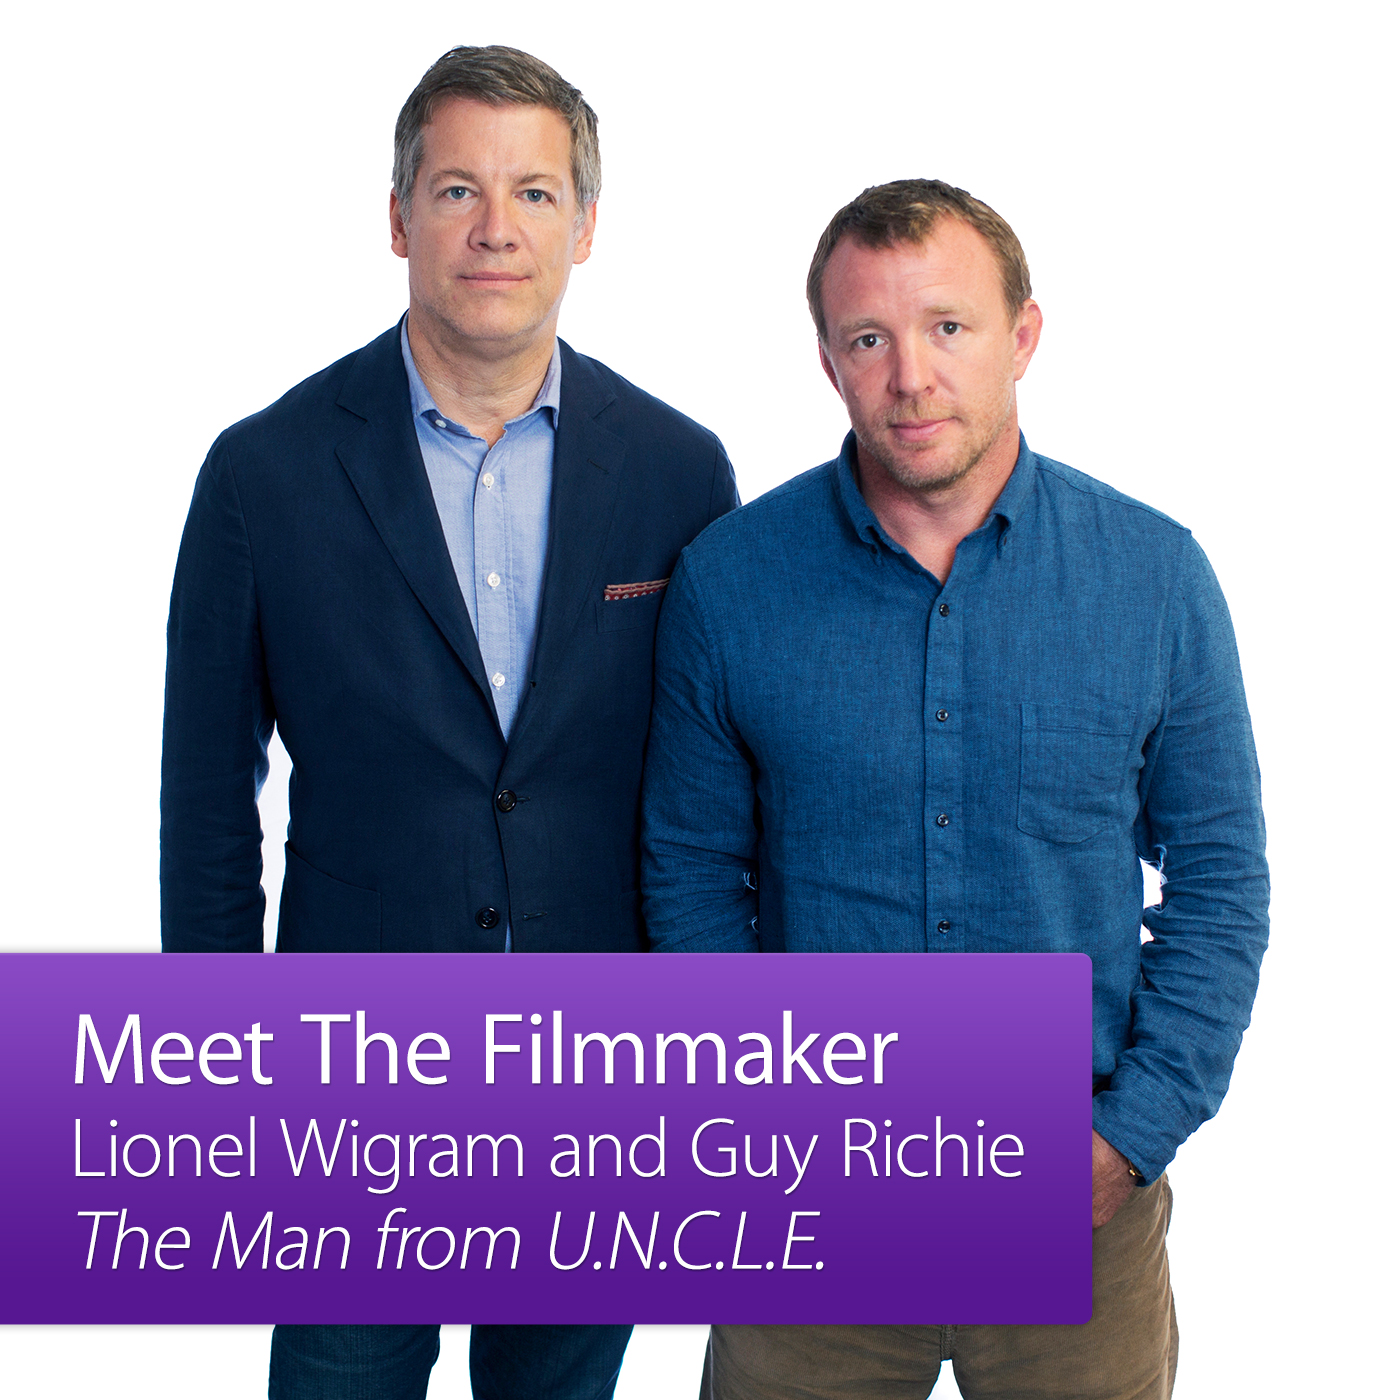 The Man from U.N.C.L.E.: Meet the Filmmaker